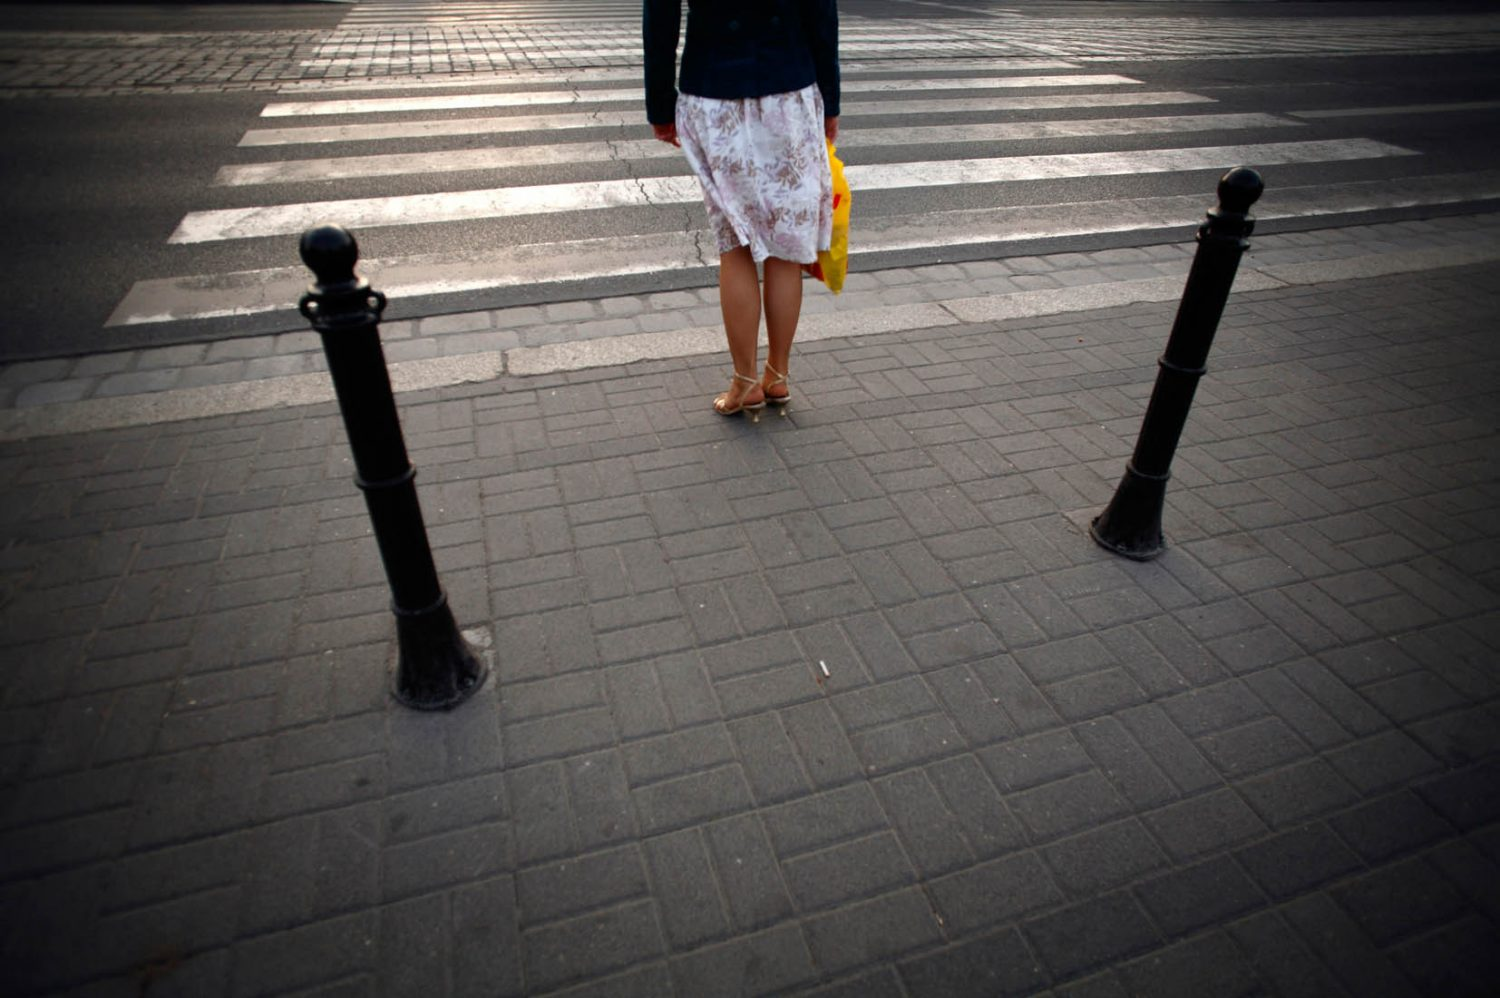 Polen, Wroclaw, 11-05-2008 Beautiful and elegant woman legs waiting at the road crossing in Wroclaw. PHOTO AND COPYRIGHT ROGER CREMERS